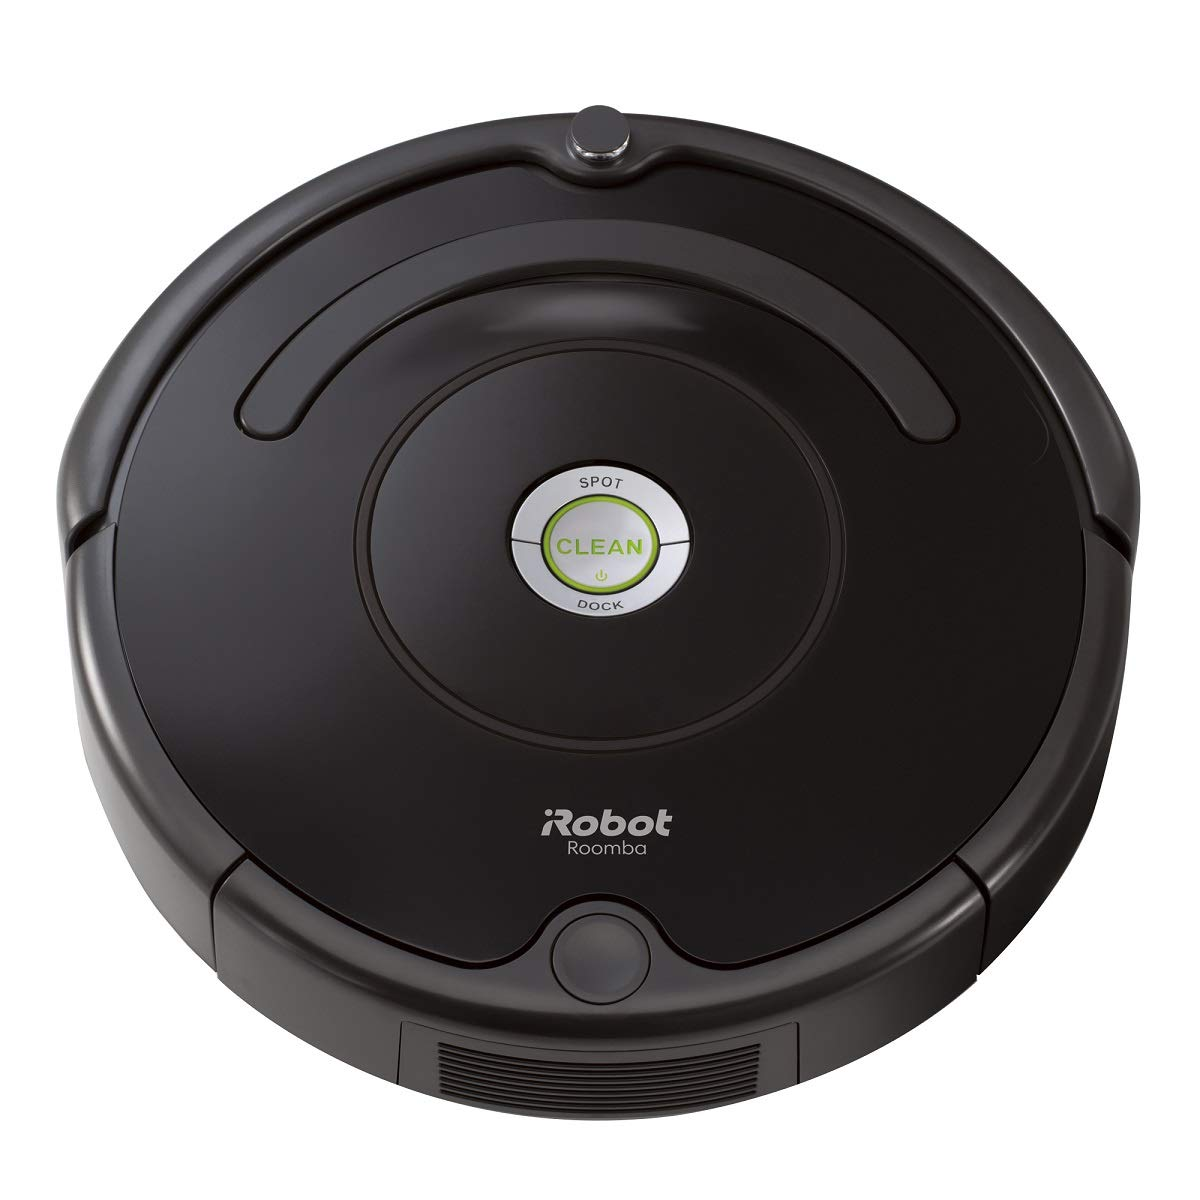 iRobot Roomba 614 Robot Vacuum- Good for Pet Hair, Carpets, Hard Floors, Self-Charging by iRobot